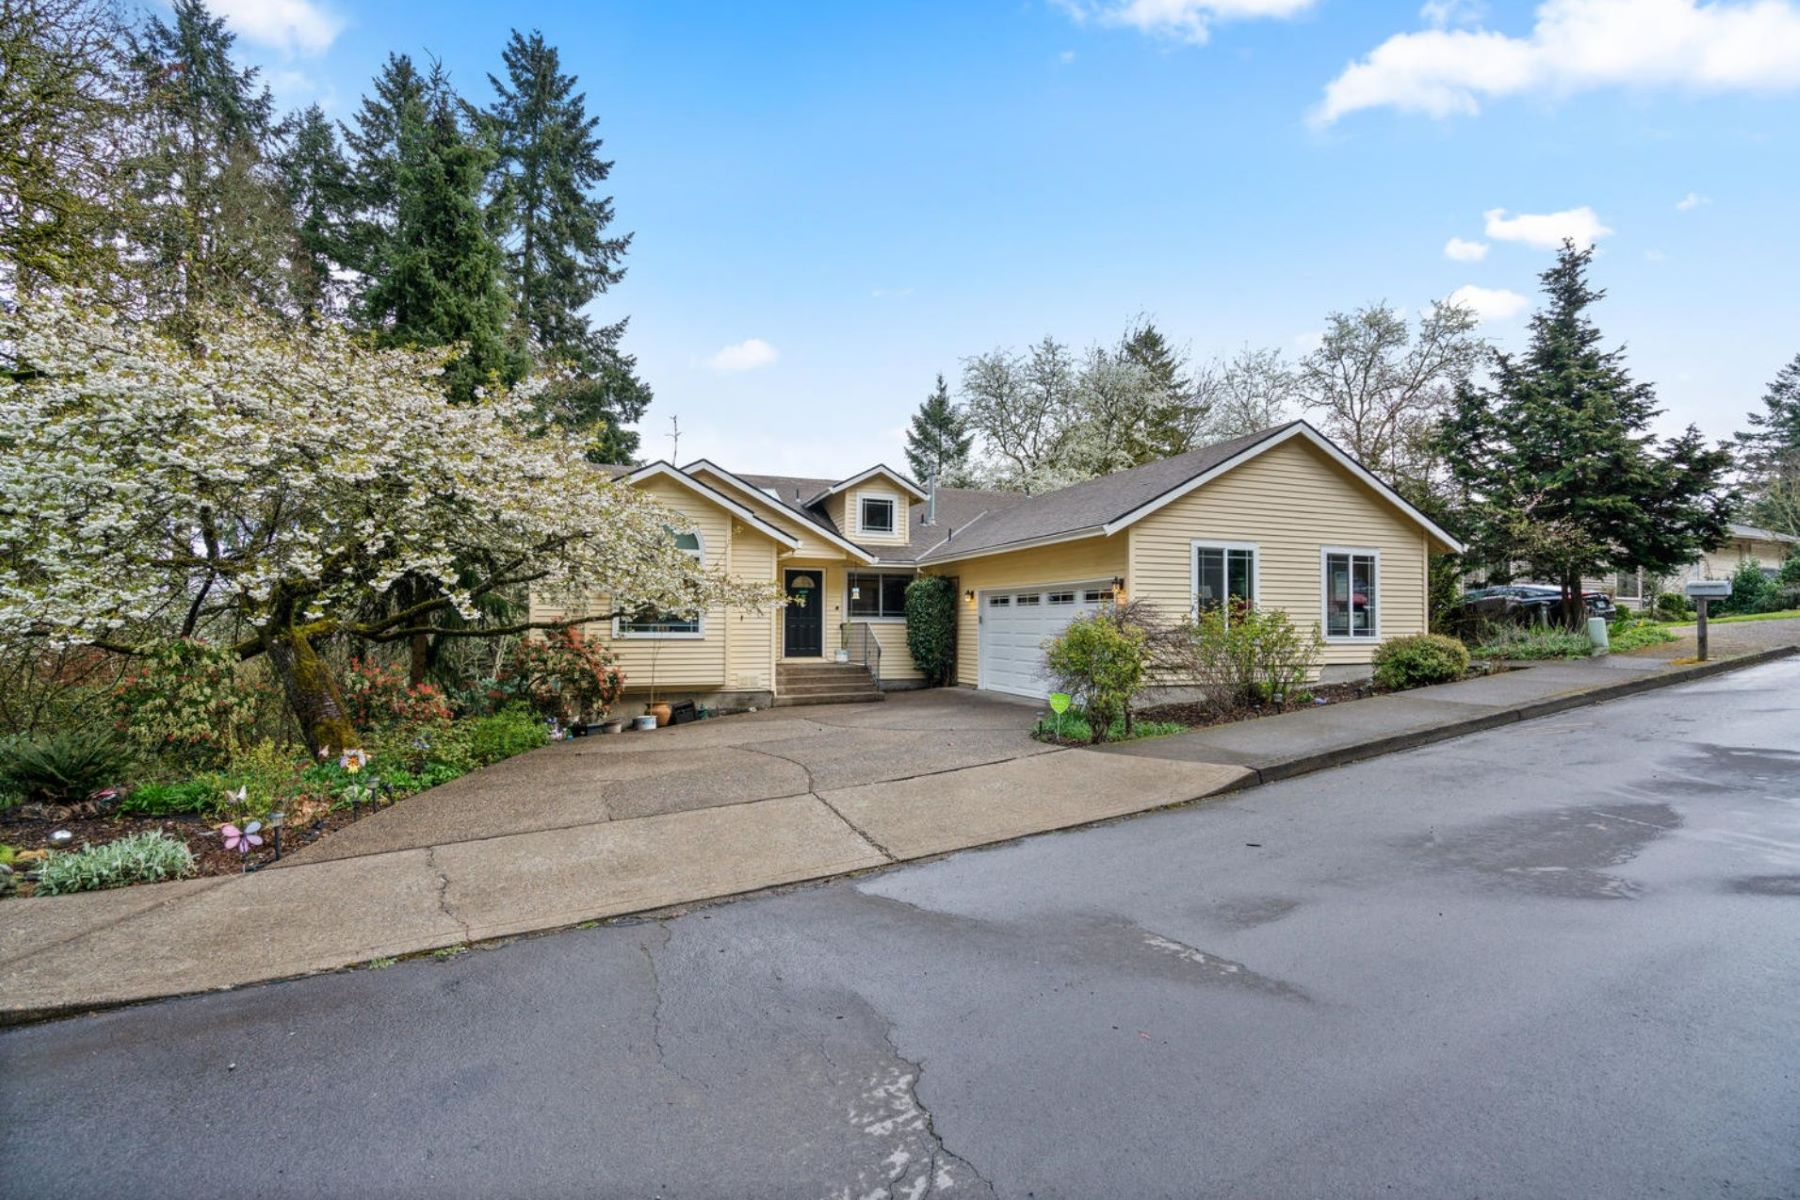 Other Residential Homes for Active at 17887 HILLSIDE DR West Linn, OR 97068 17887 HILLSIDE DR West Linn, Oregon 97068 United States